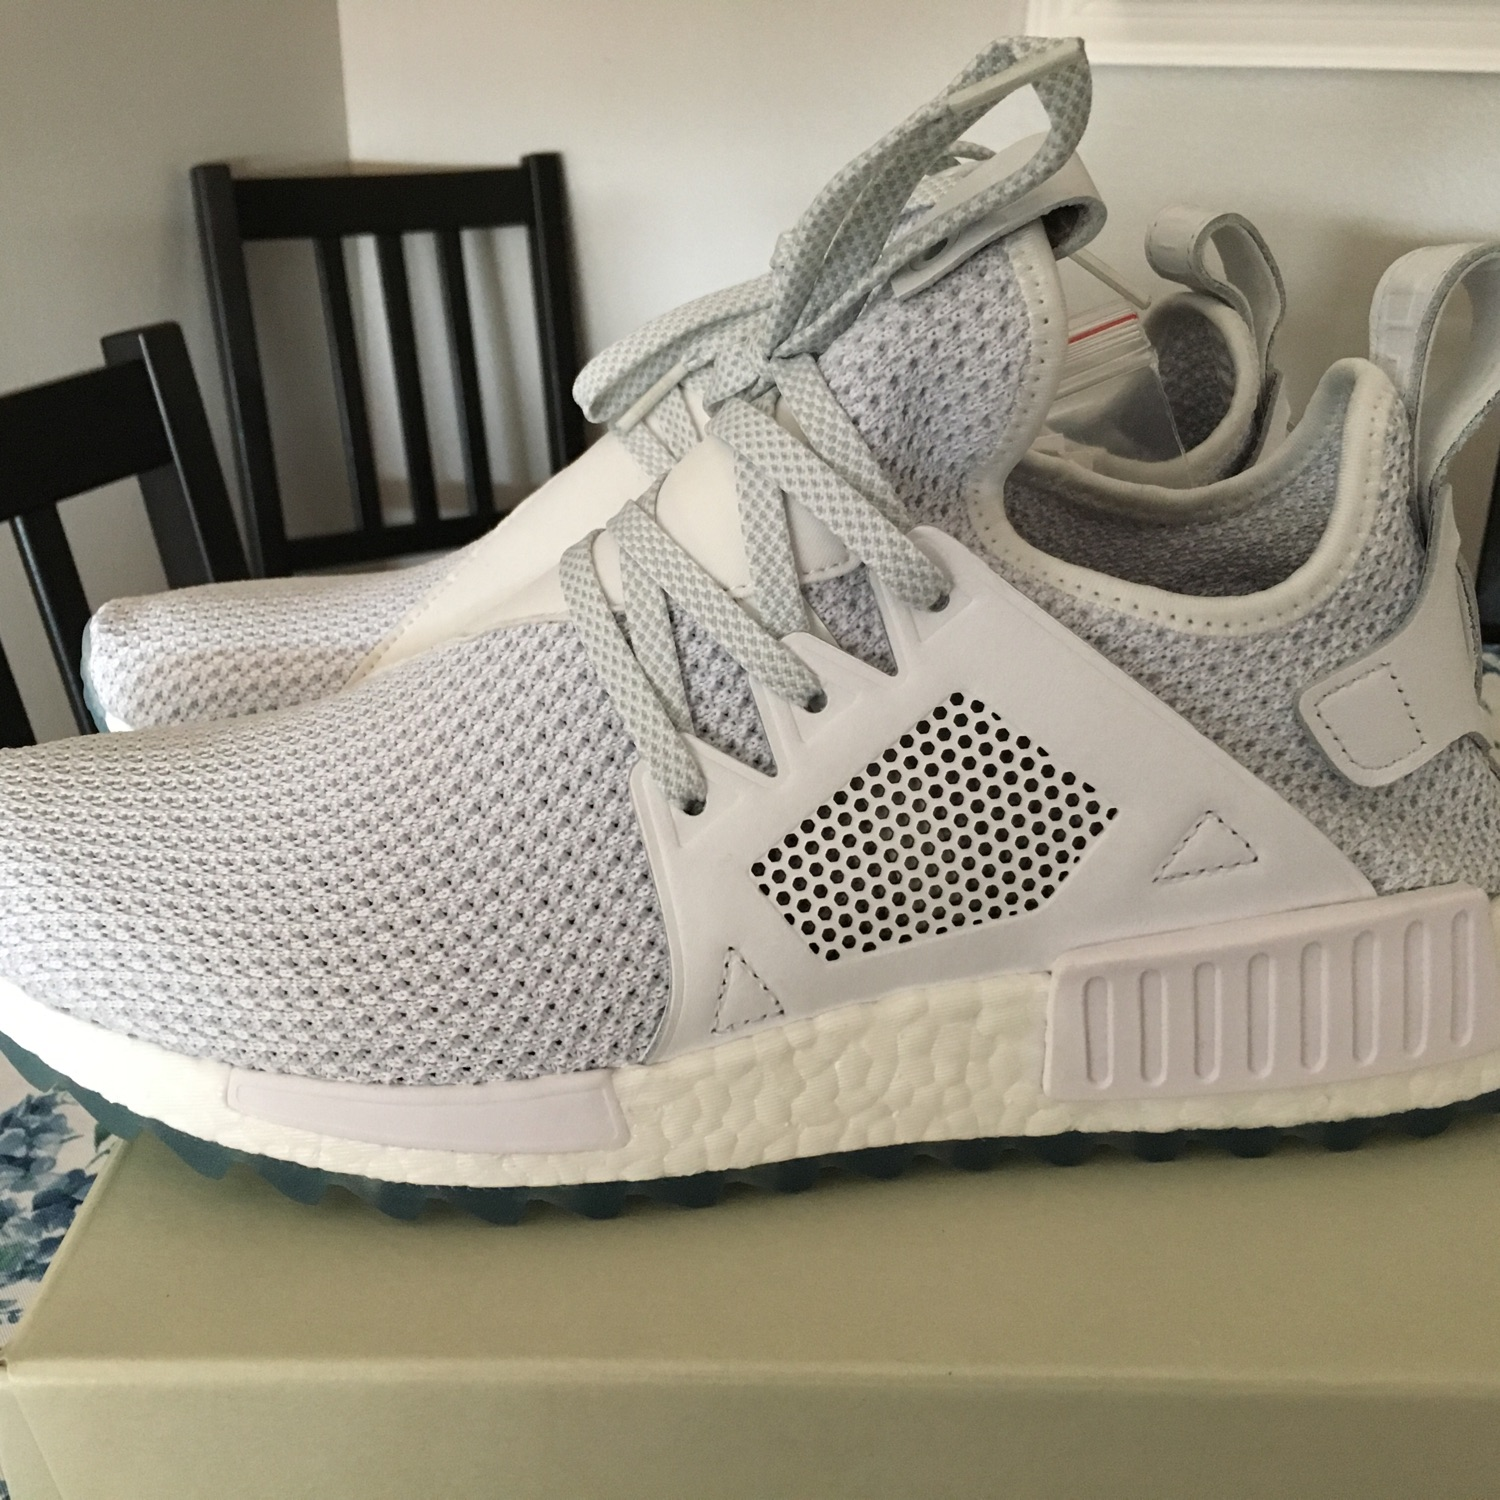 on sale 206be f5db3 Adidas Nmd Xr1 Titolo White Ice Celestial Boost